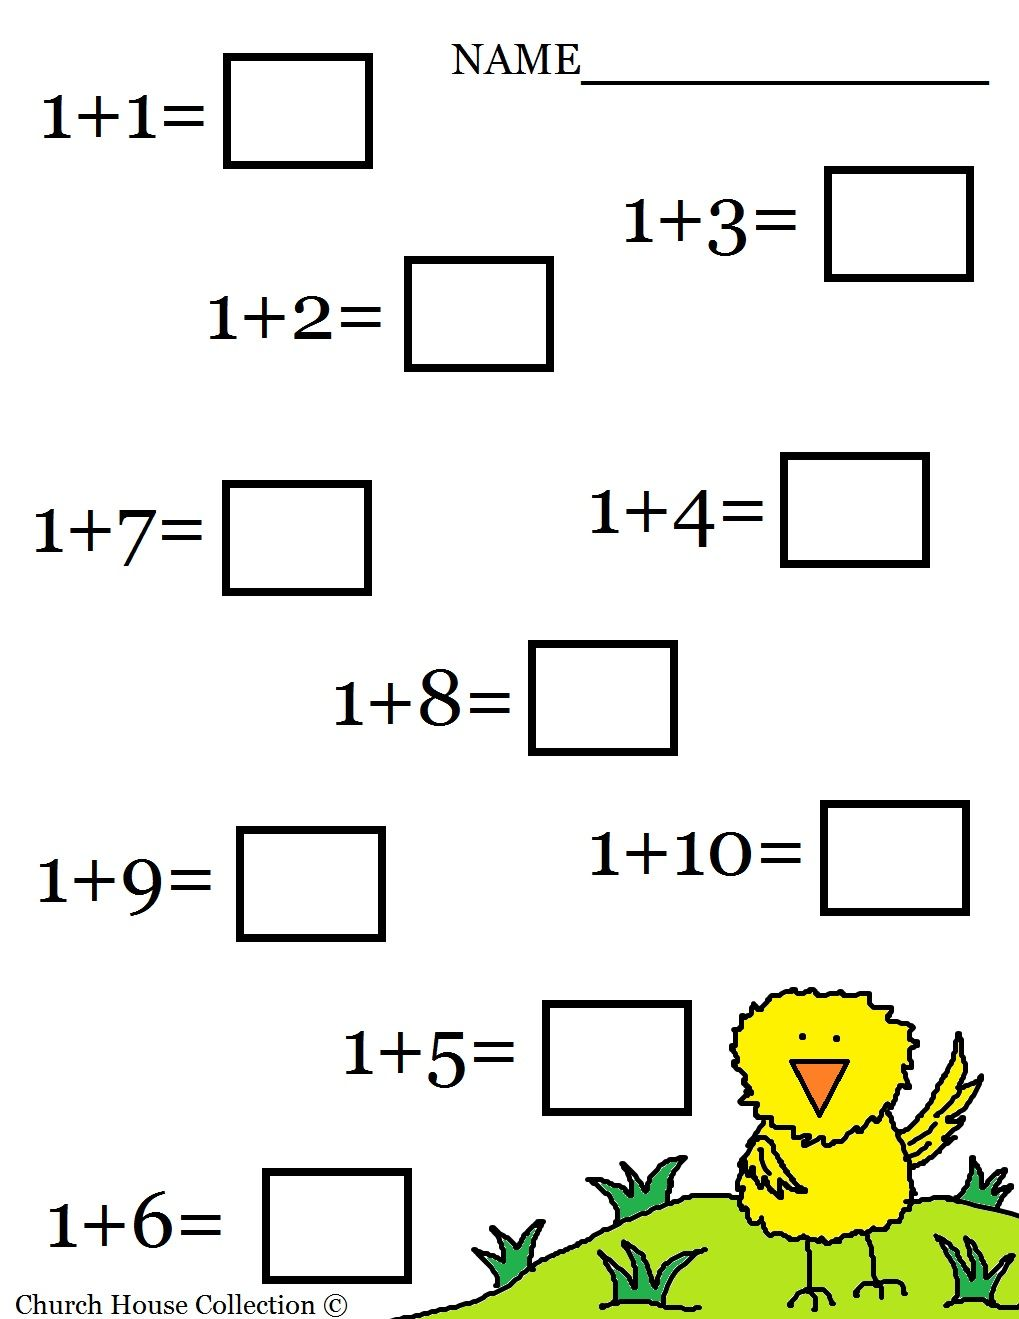 Aldiablosus  Personable  Images About Worksheets  Math On Pinterest  Math Sheets  With Licious  Images About Worksheets  Math On Pinterest  Math Sheets Math Worksheets For Kindergarten And Simple Addition With Easy On The Eye Maths Worksheets Grade  Also Story Sequencing Worksheet In Addition Nursery Worksheets Printables And Example Context Clues Worksheets As Well As Free Printable Language Arts Worksheets For Th Grade Additionally Chemistry  Worksheets From Pinterestcom With Aldiablosus  Licious  Images About Worksheets  Math On Pinterest  Math Sheets  With Easy On The Eye  Images About Worksheets  Math On Pinterest  Math Sheets Math Worksheets For Kindergarten And Simple Addition And Personable Maths Worksheets Grade  Also Story Sequencing Worksheet In Addition Nursery Worksheets Printables From Pinterestcom